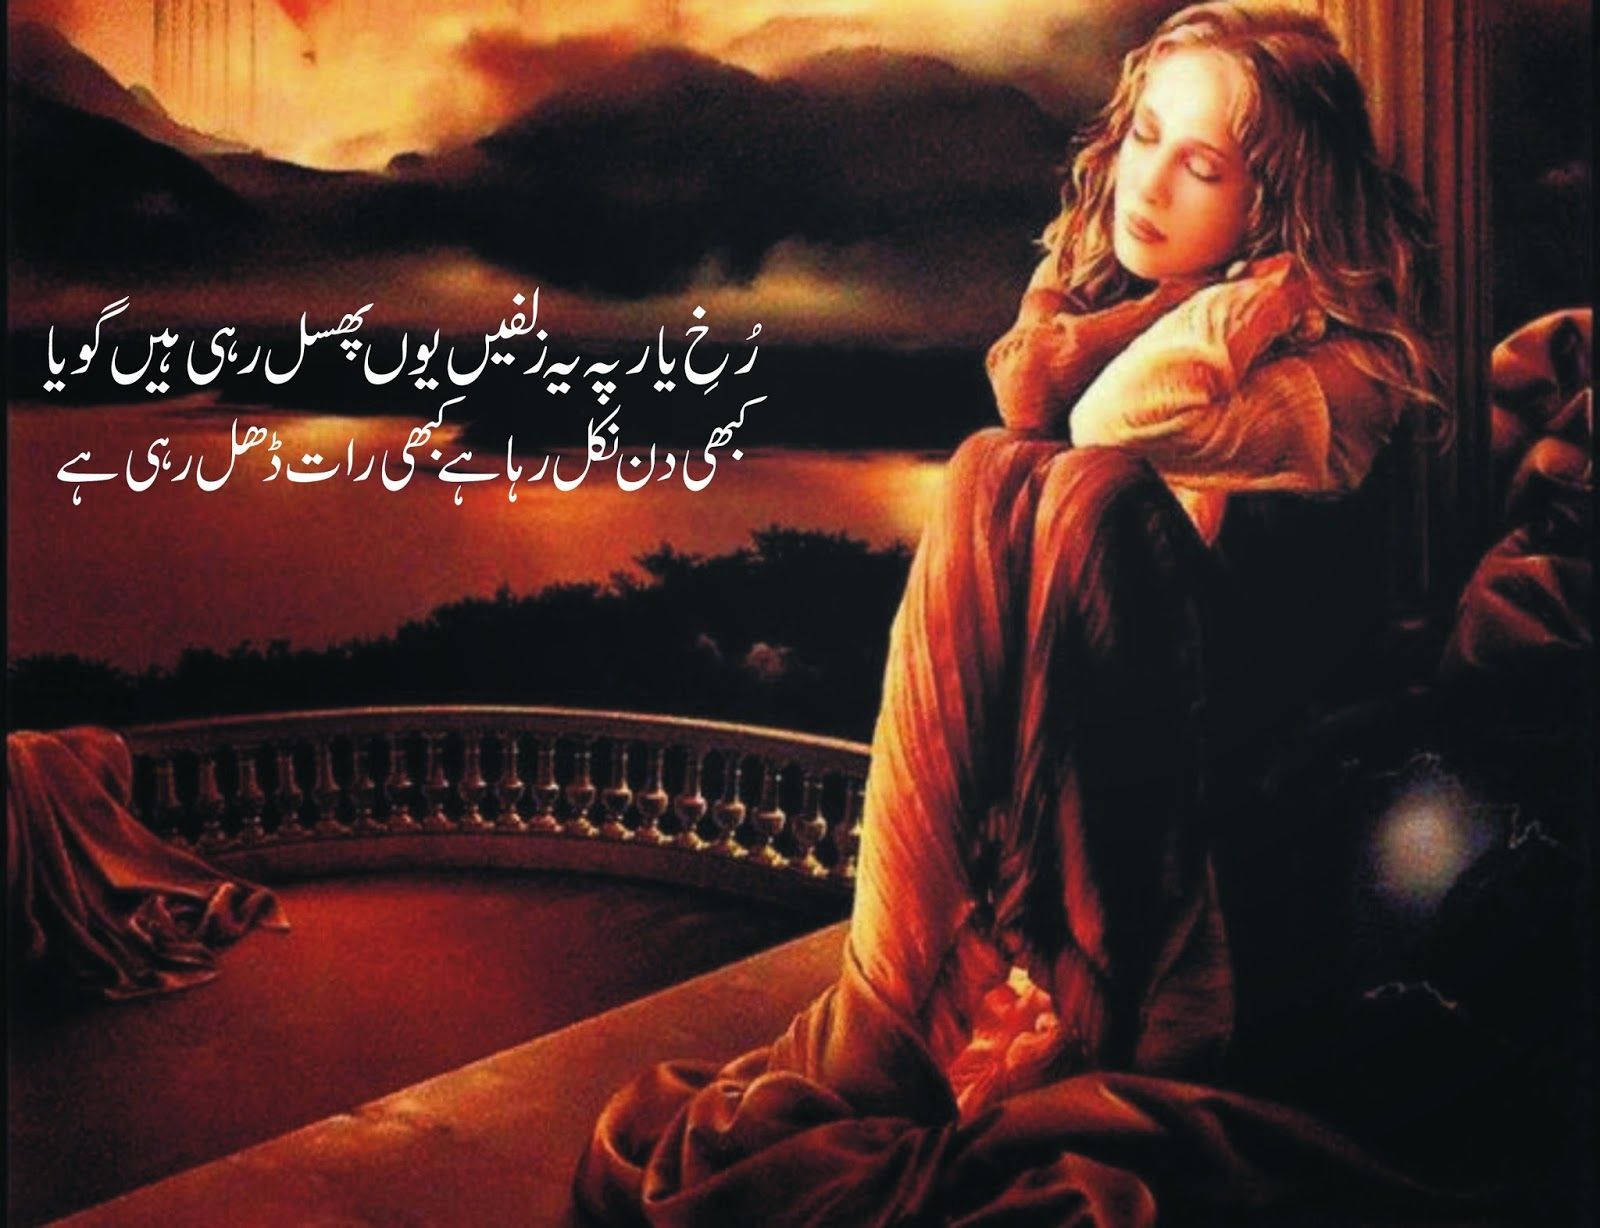 Rukh E Yaar SMS Shayari In Urdu With Image